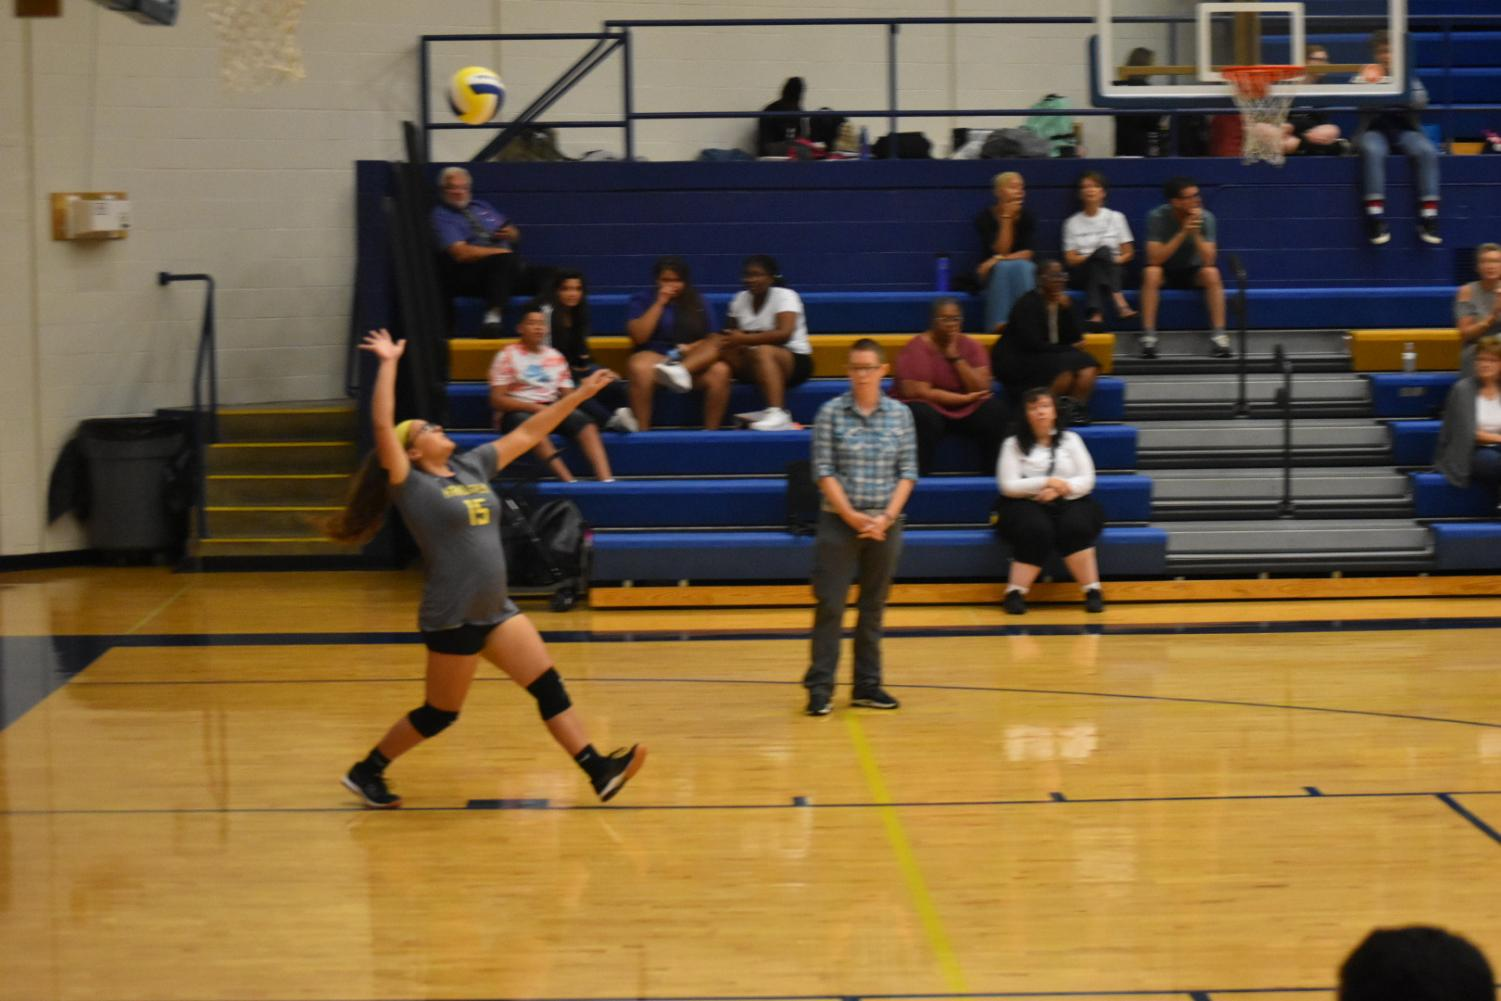 Ashley Matamoros (9) serves the ball against Crossroads College Prep on September 24th.